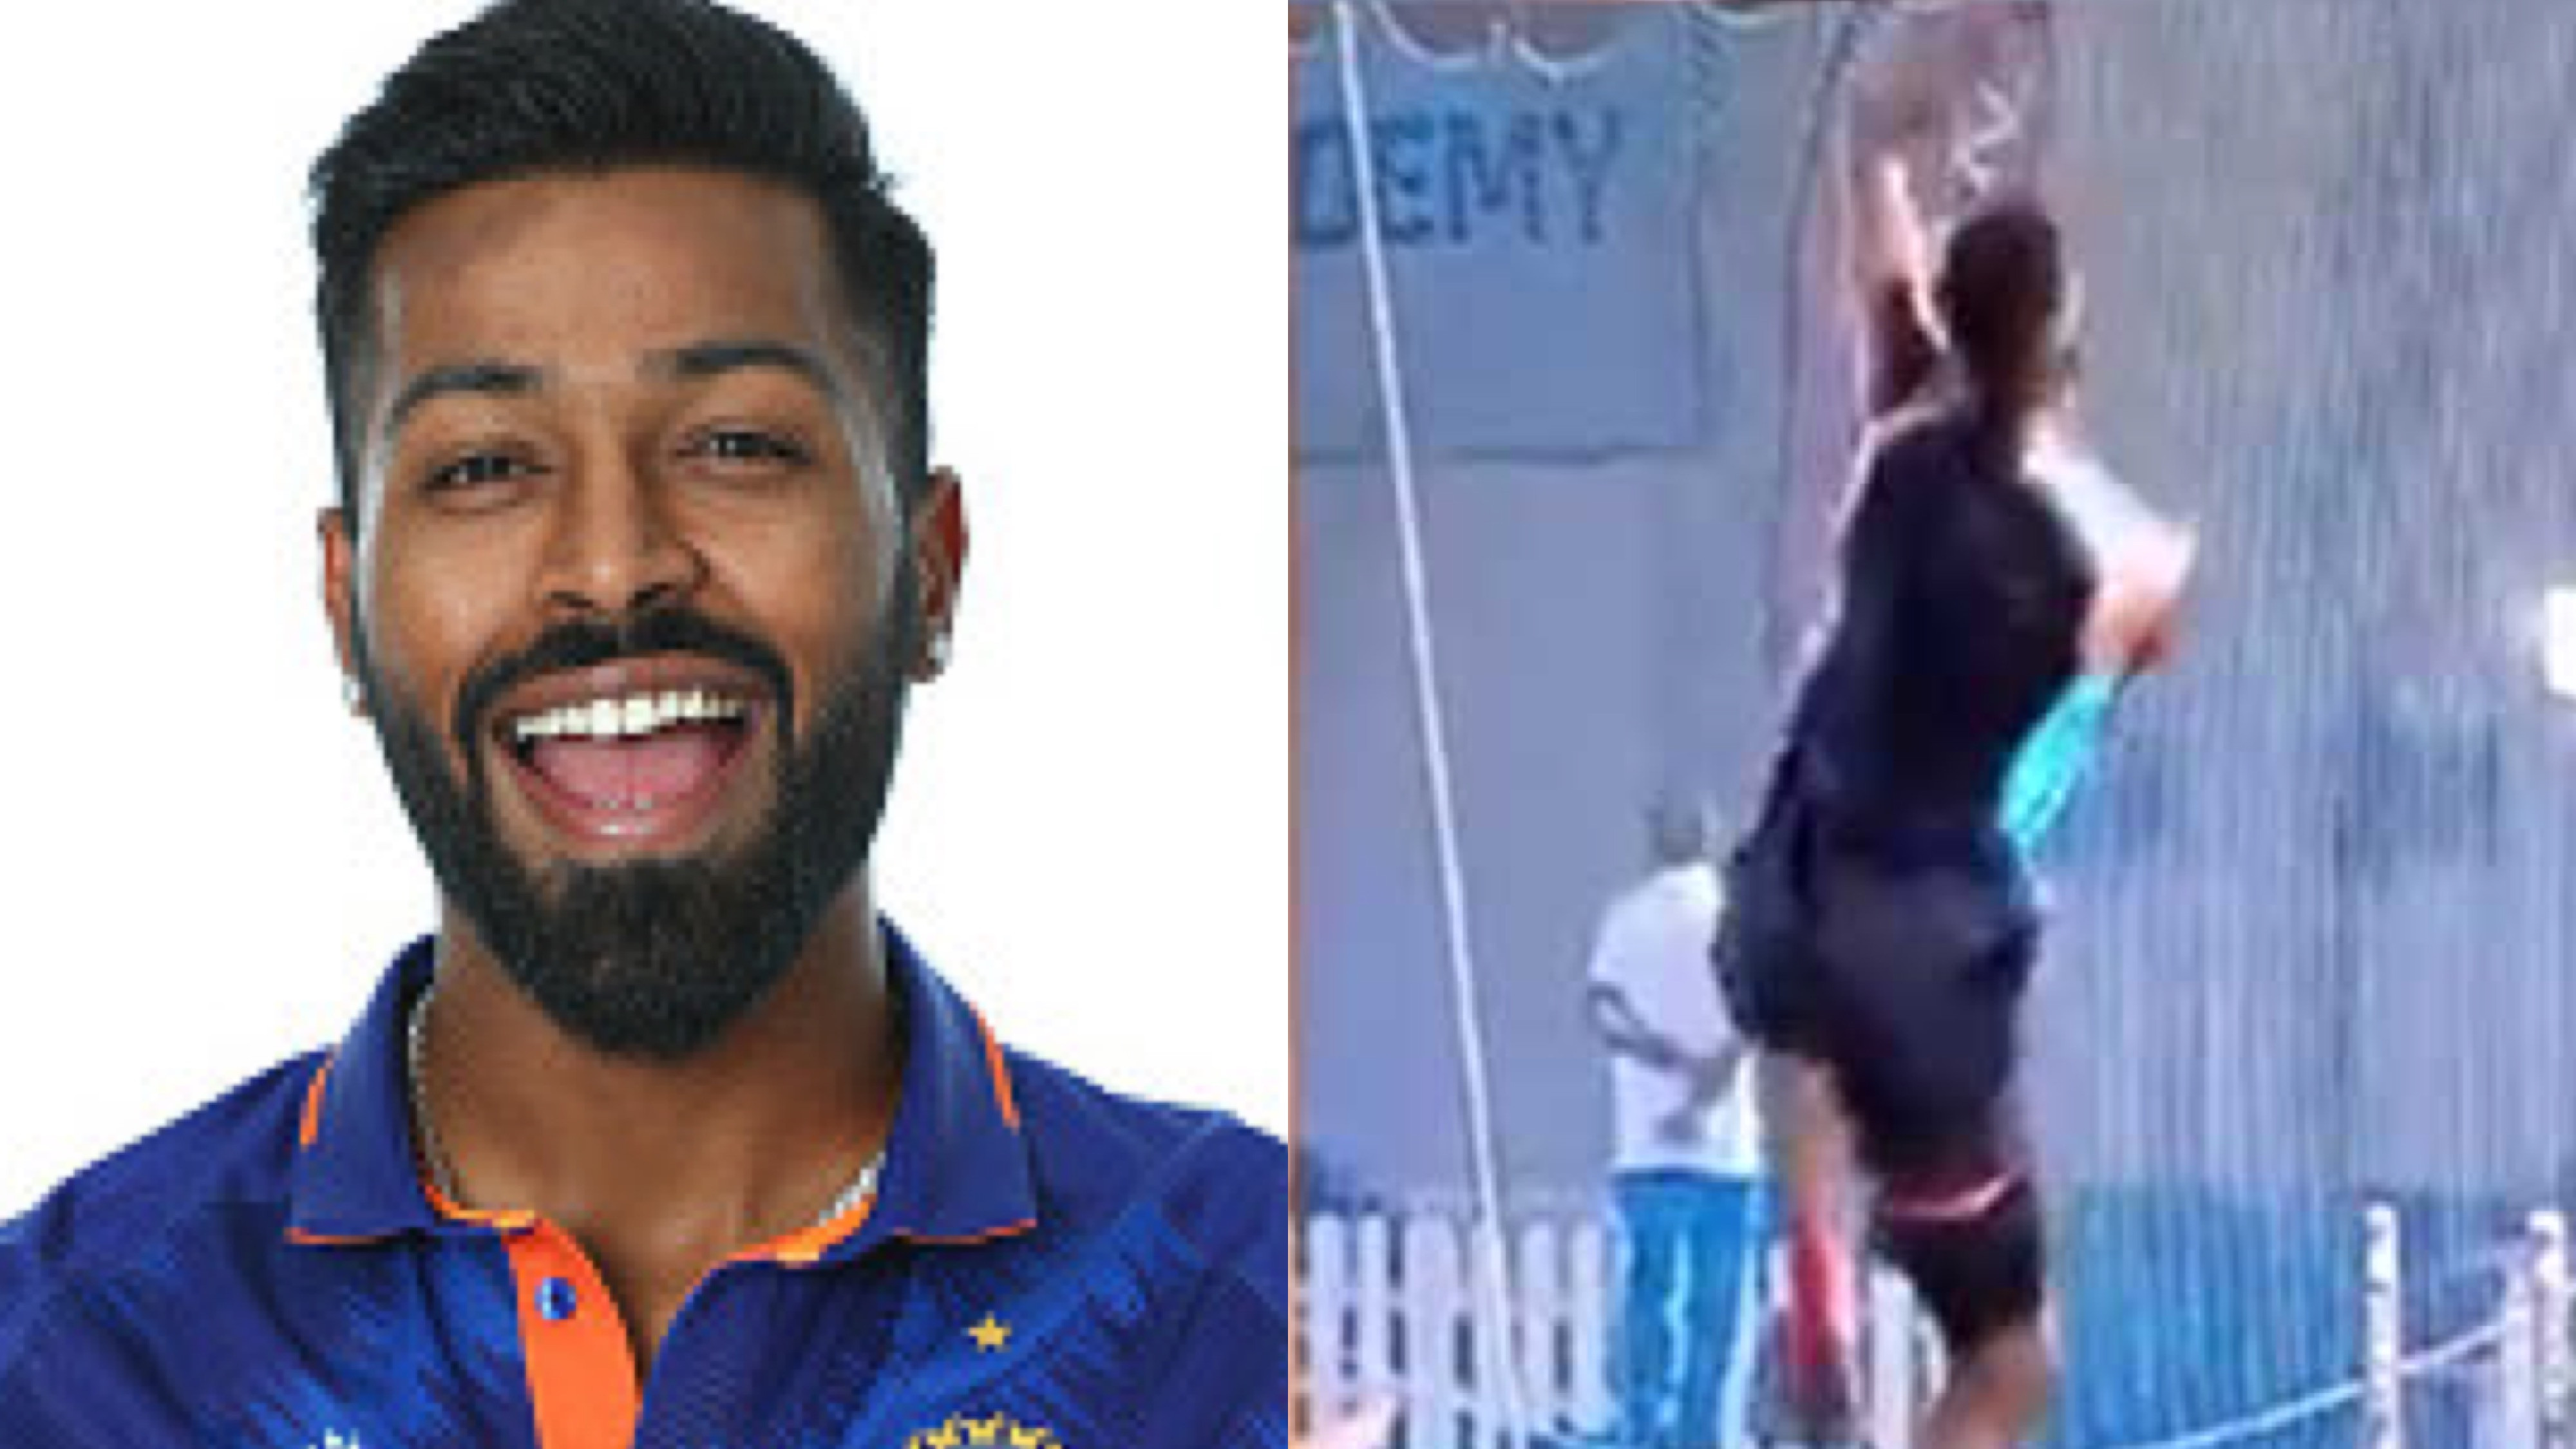 T20 World Cup 2021: WATCH - Hardik Pandya bowls at nets ahead of India's next game against New Zealand